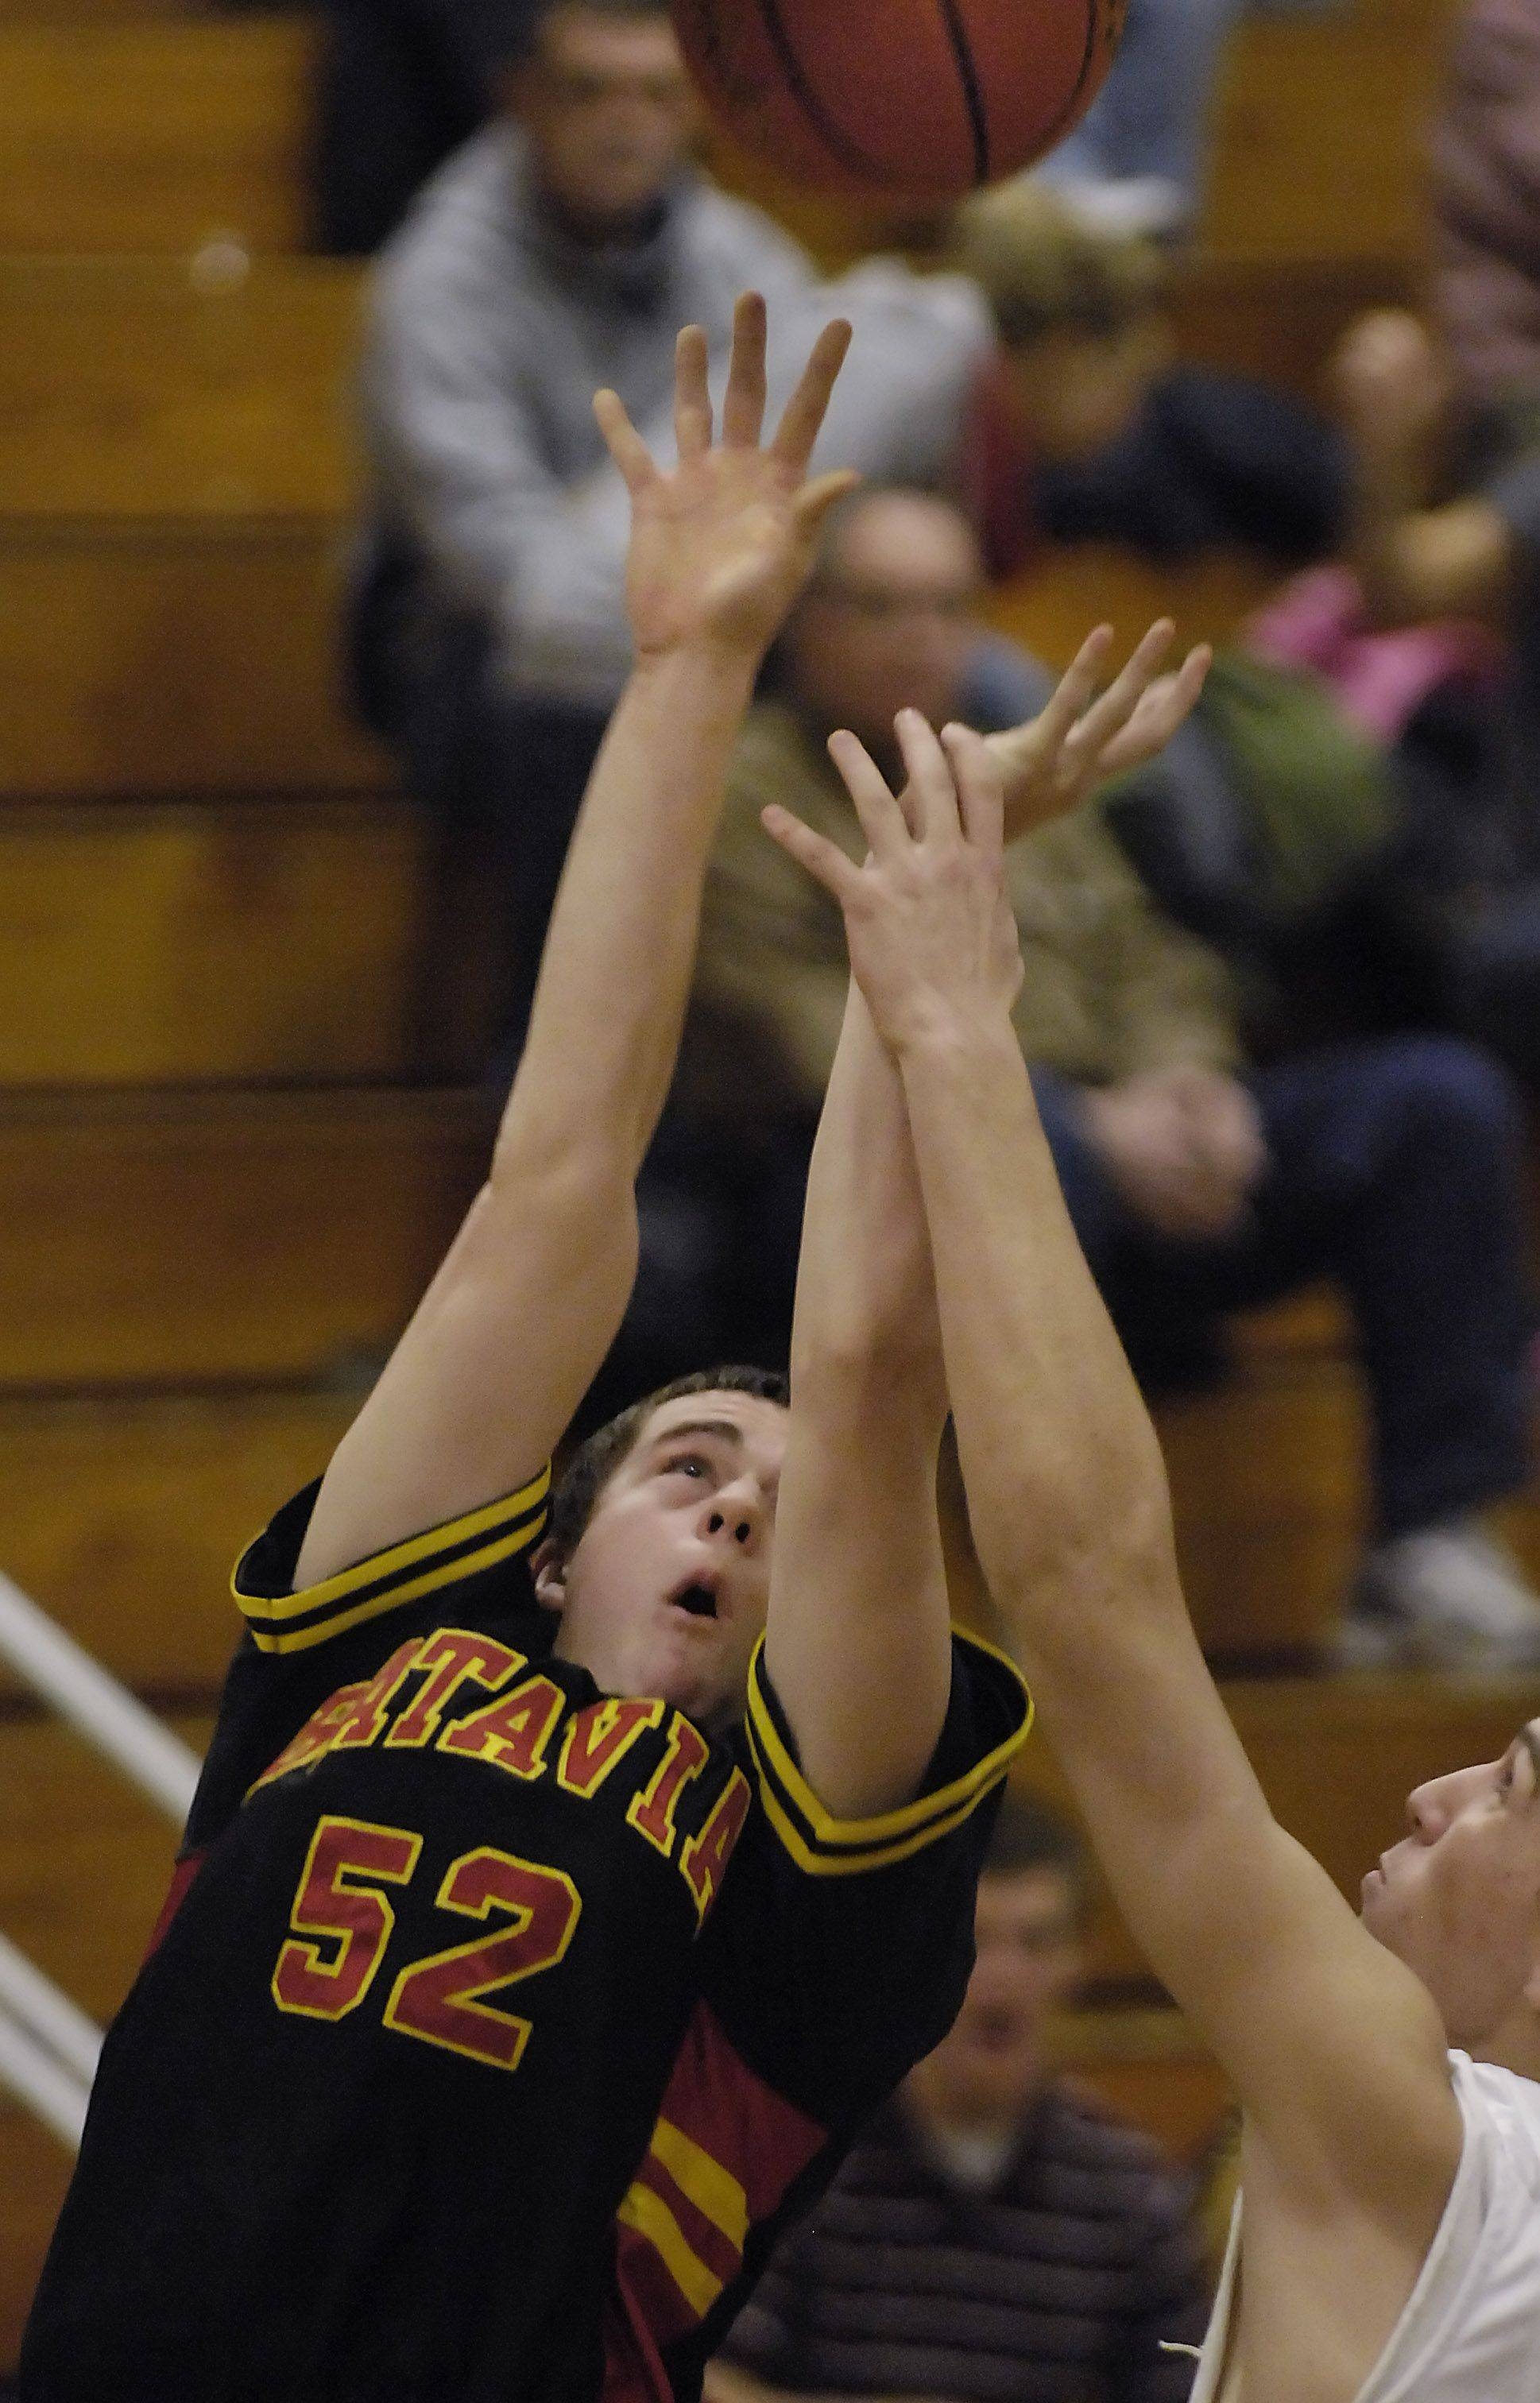 Batavia's Brady Strittmatter puts up a shot over Glenbrook South's Dusko Despot in the consolation game of the Elgin holiday tournament Thursday.